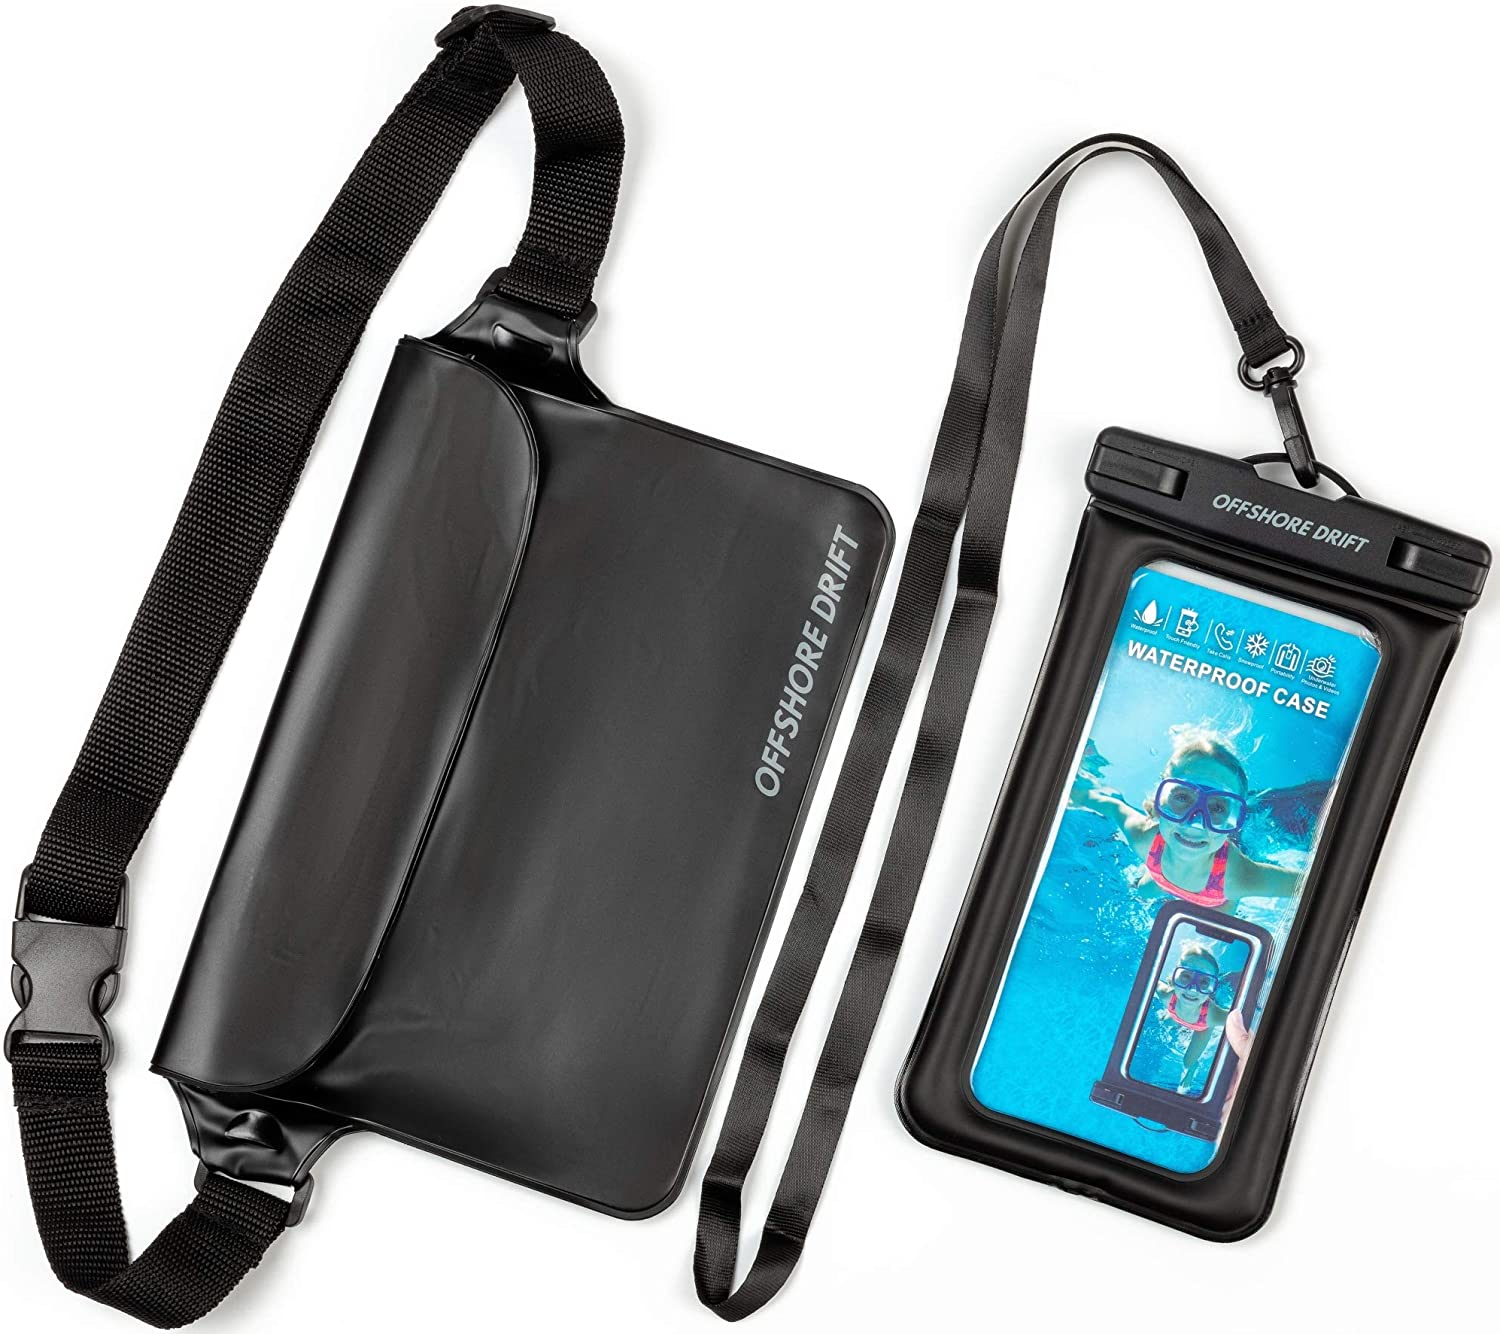 Offshore Drift 2PC Waterproof Phone Pouch Case and Waterproof Waist Dry Bag - Touch Screen Compatible - Black- Perfect for The Pool, Beach, Snow, Travelling, Swimming, Snorkelling and More